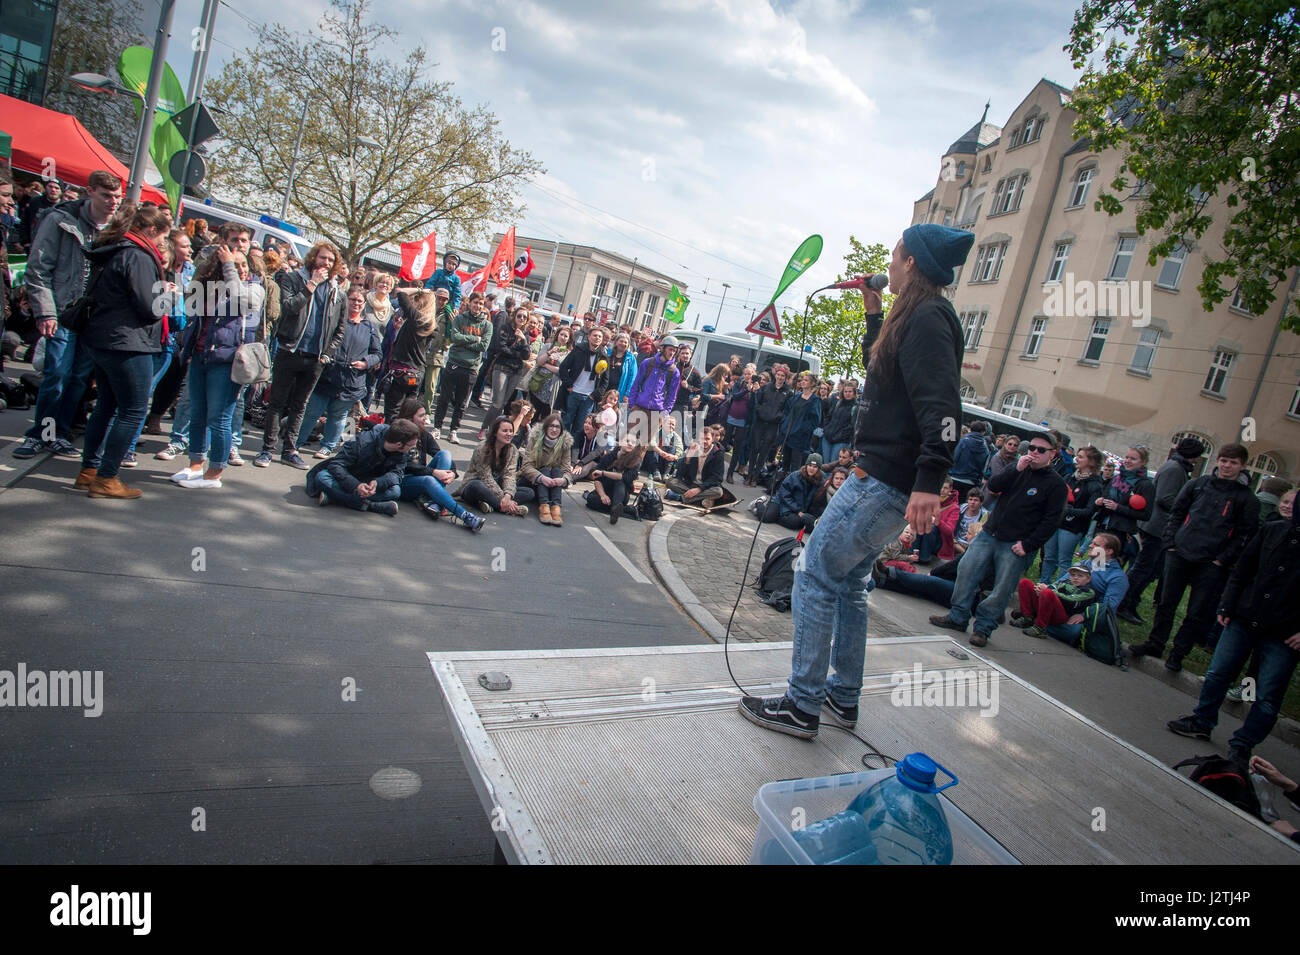 Halle, Germany . 01st May, 2017. Counter demonstrators to a far right May Day march in Halle, Saxony-Anhalt. The Stock Photo